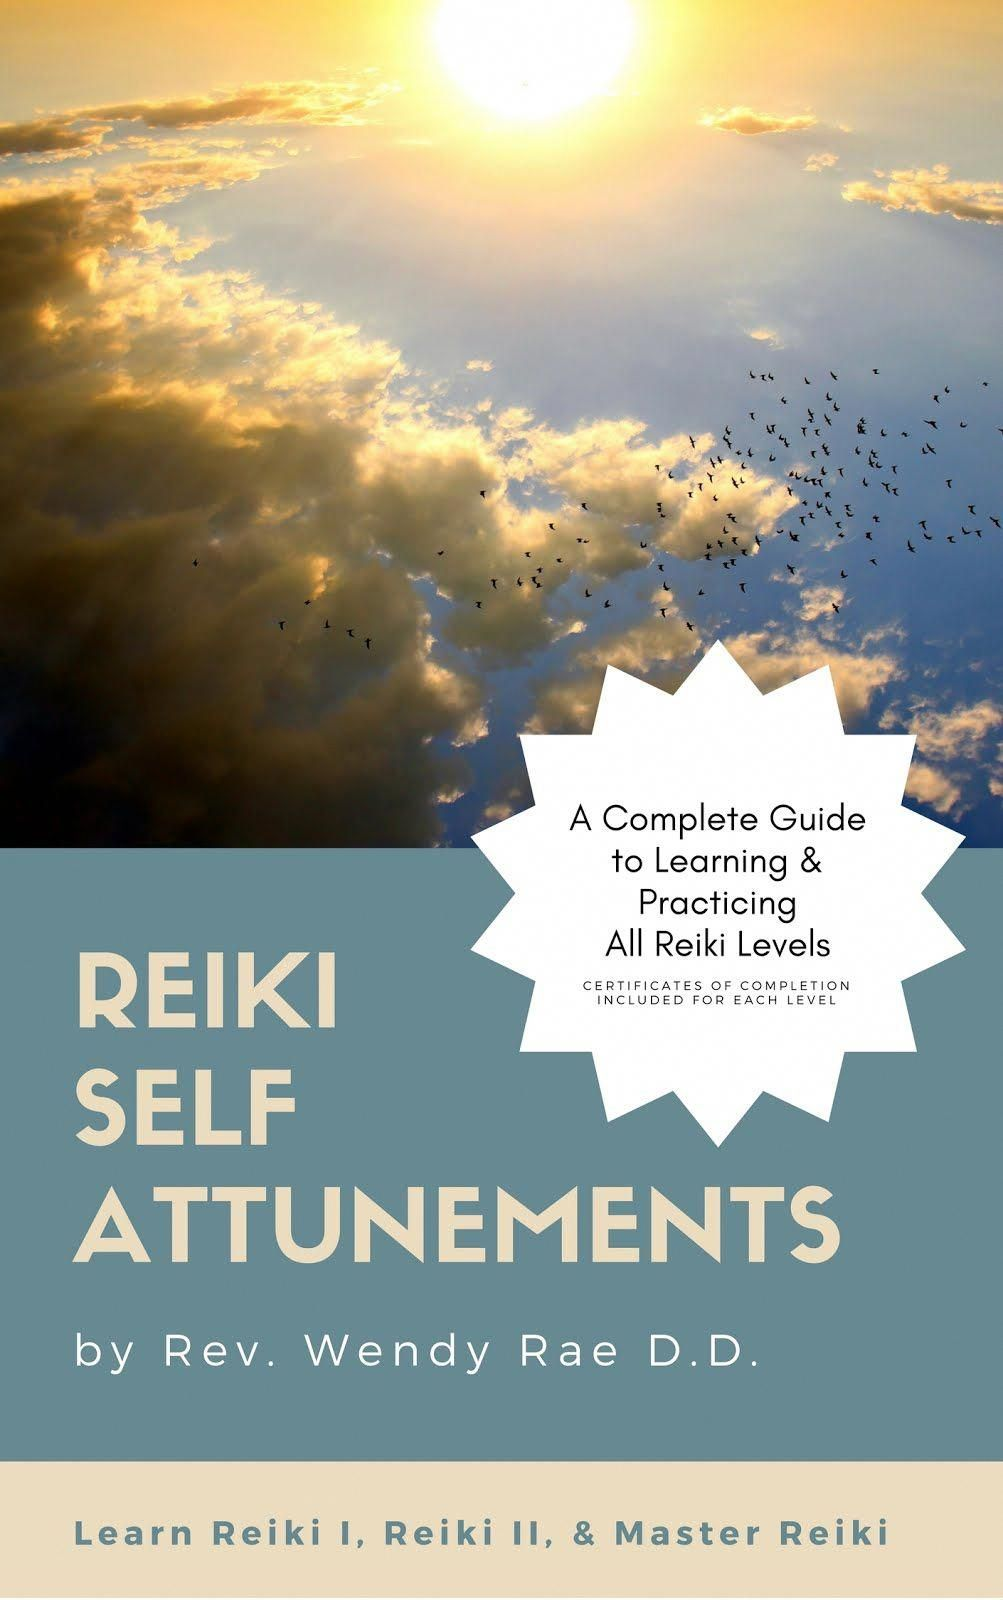 If you want to heal yourself and others, Reiki is an incredible tool for  healing